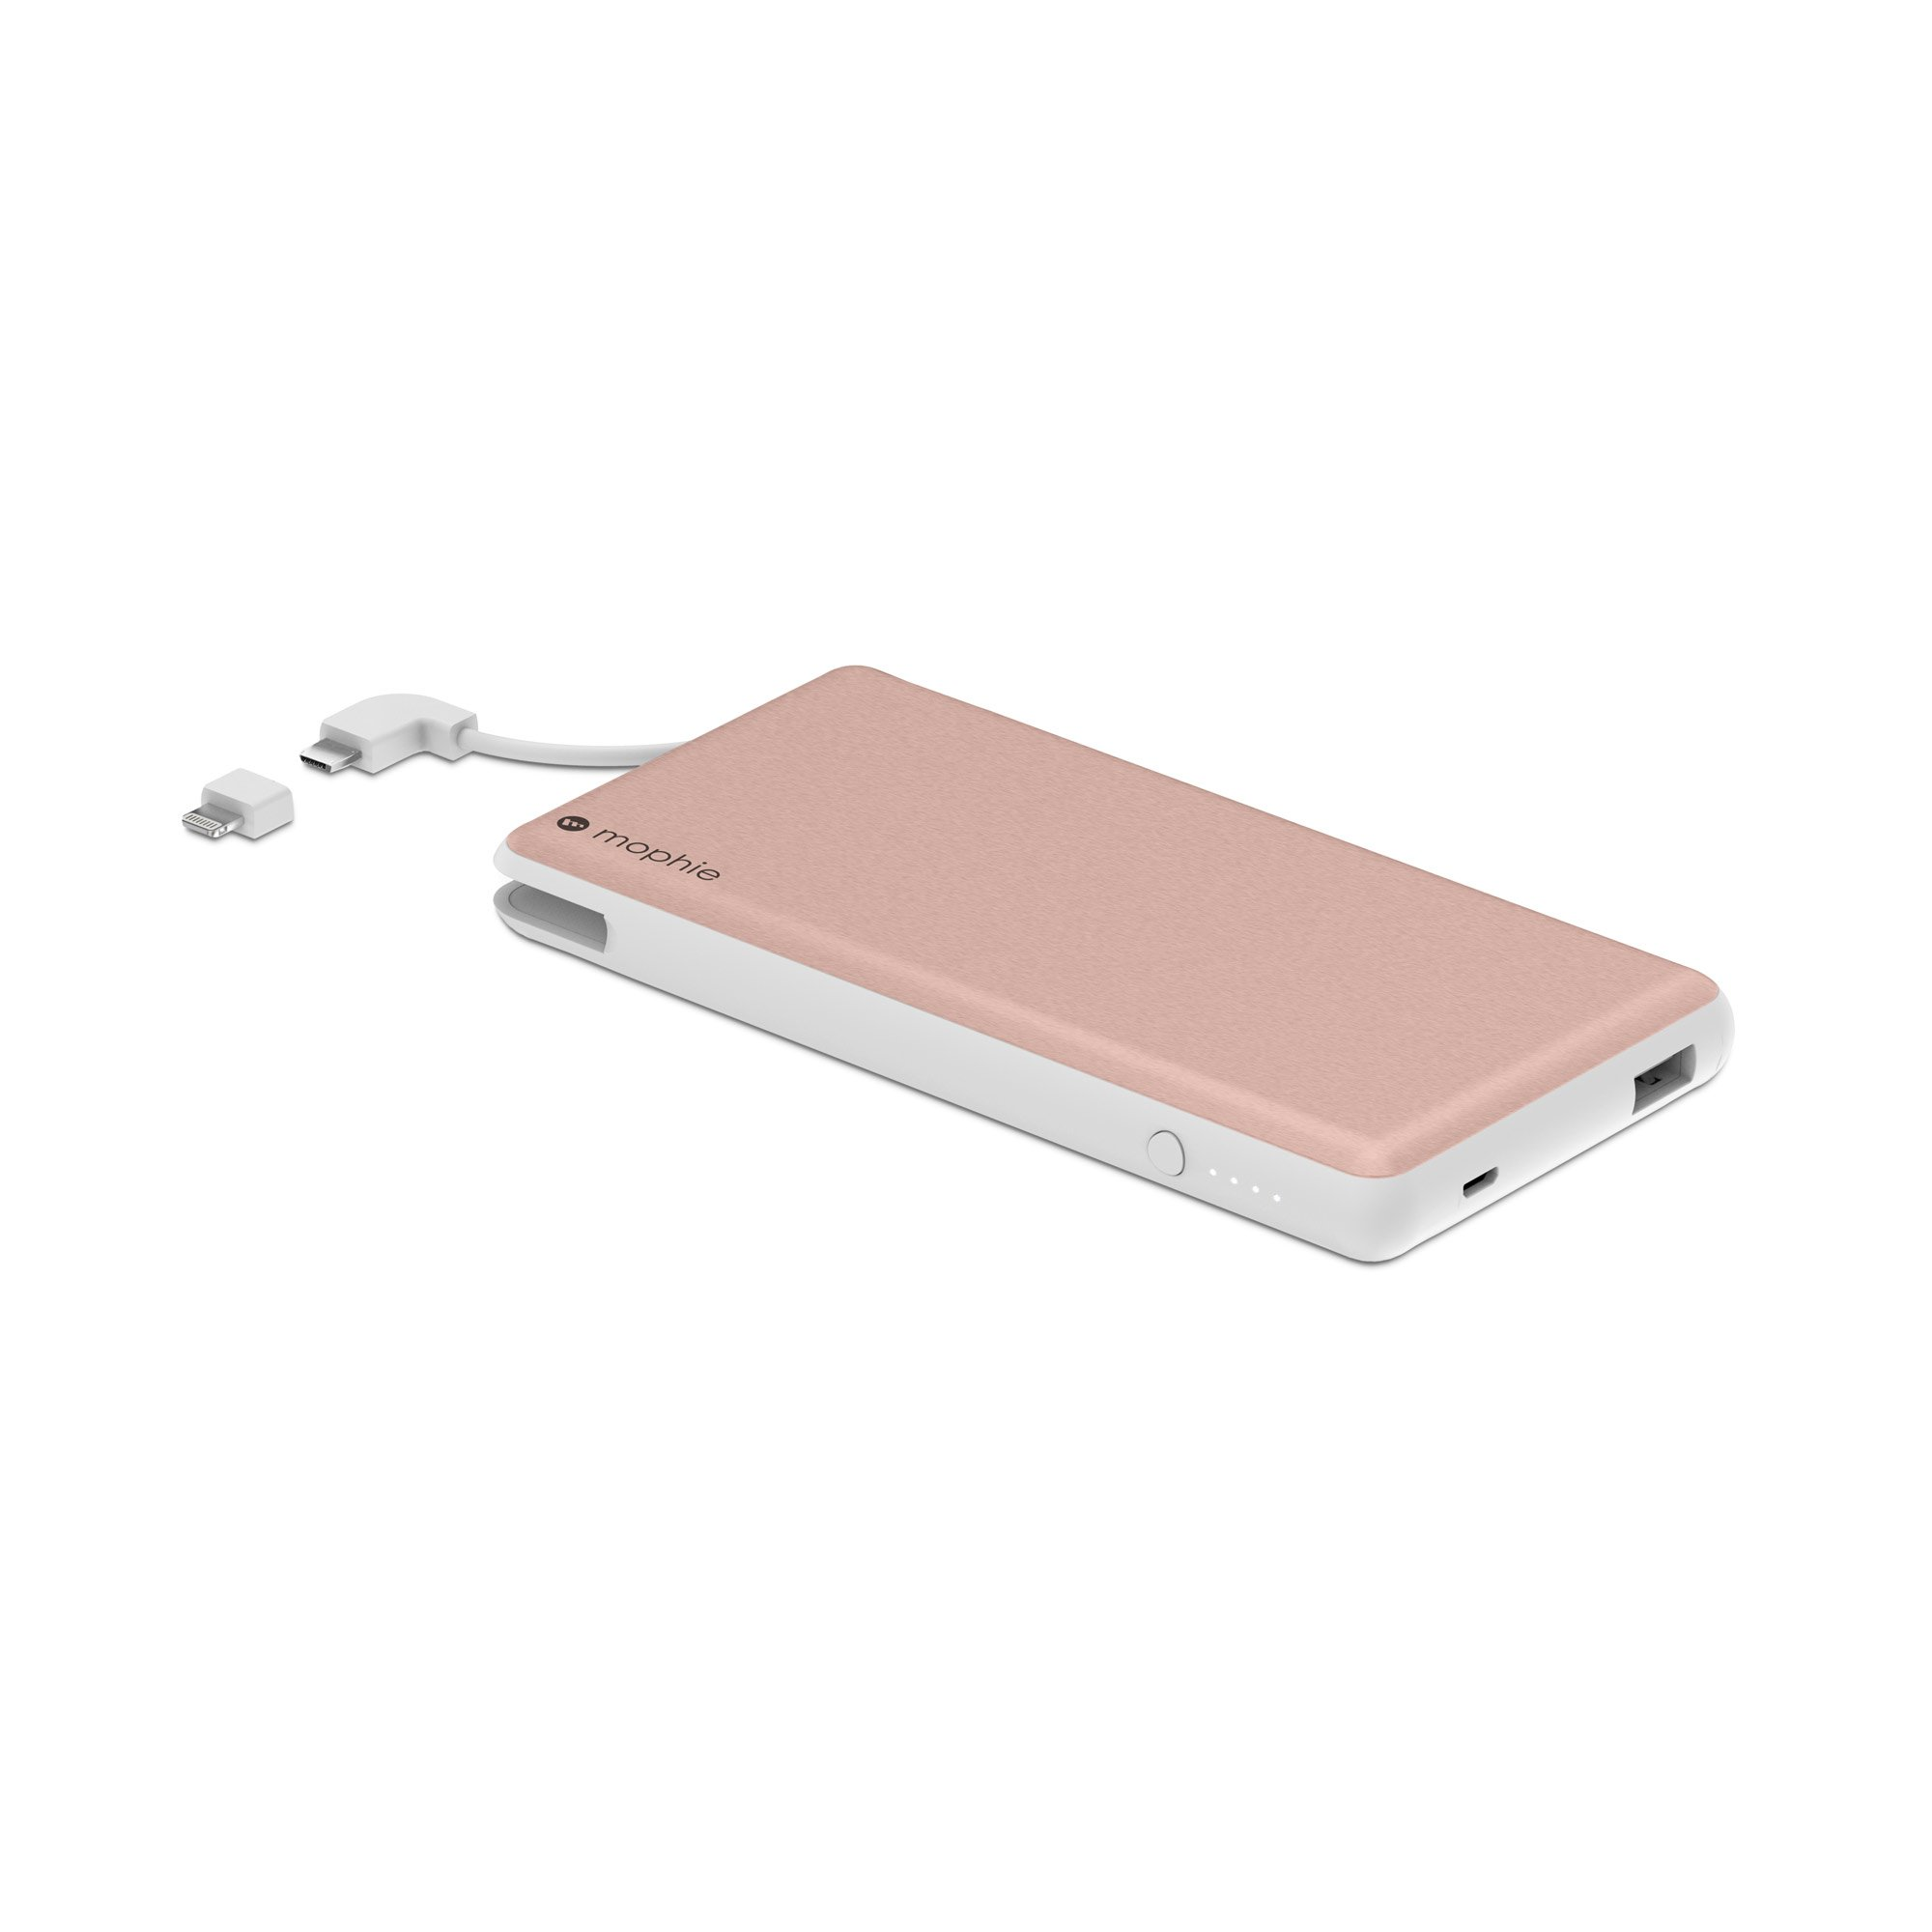 mophie powerstation Plus XL External Battery with Built in Cables for Smartphones and Tablets (12,000mAh) - Rose Gold